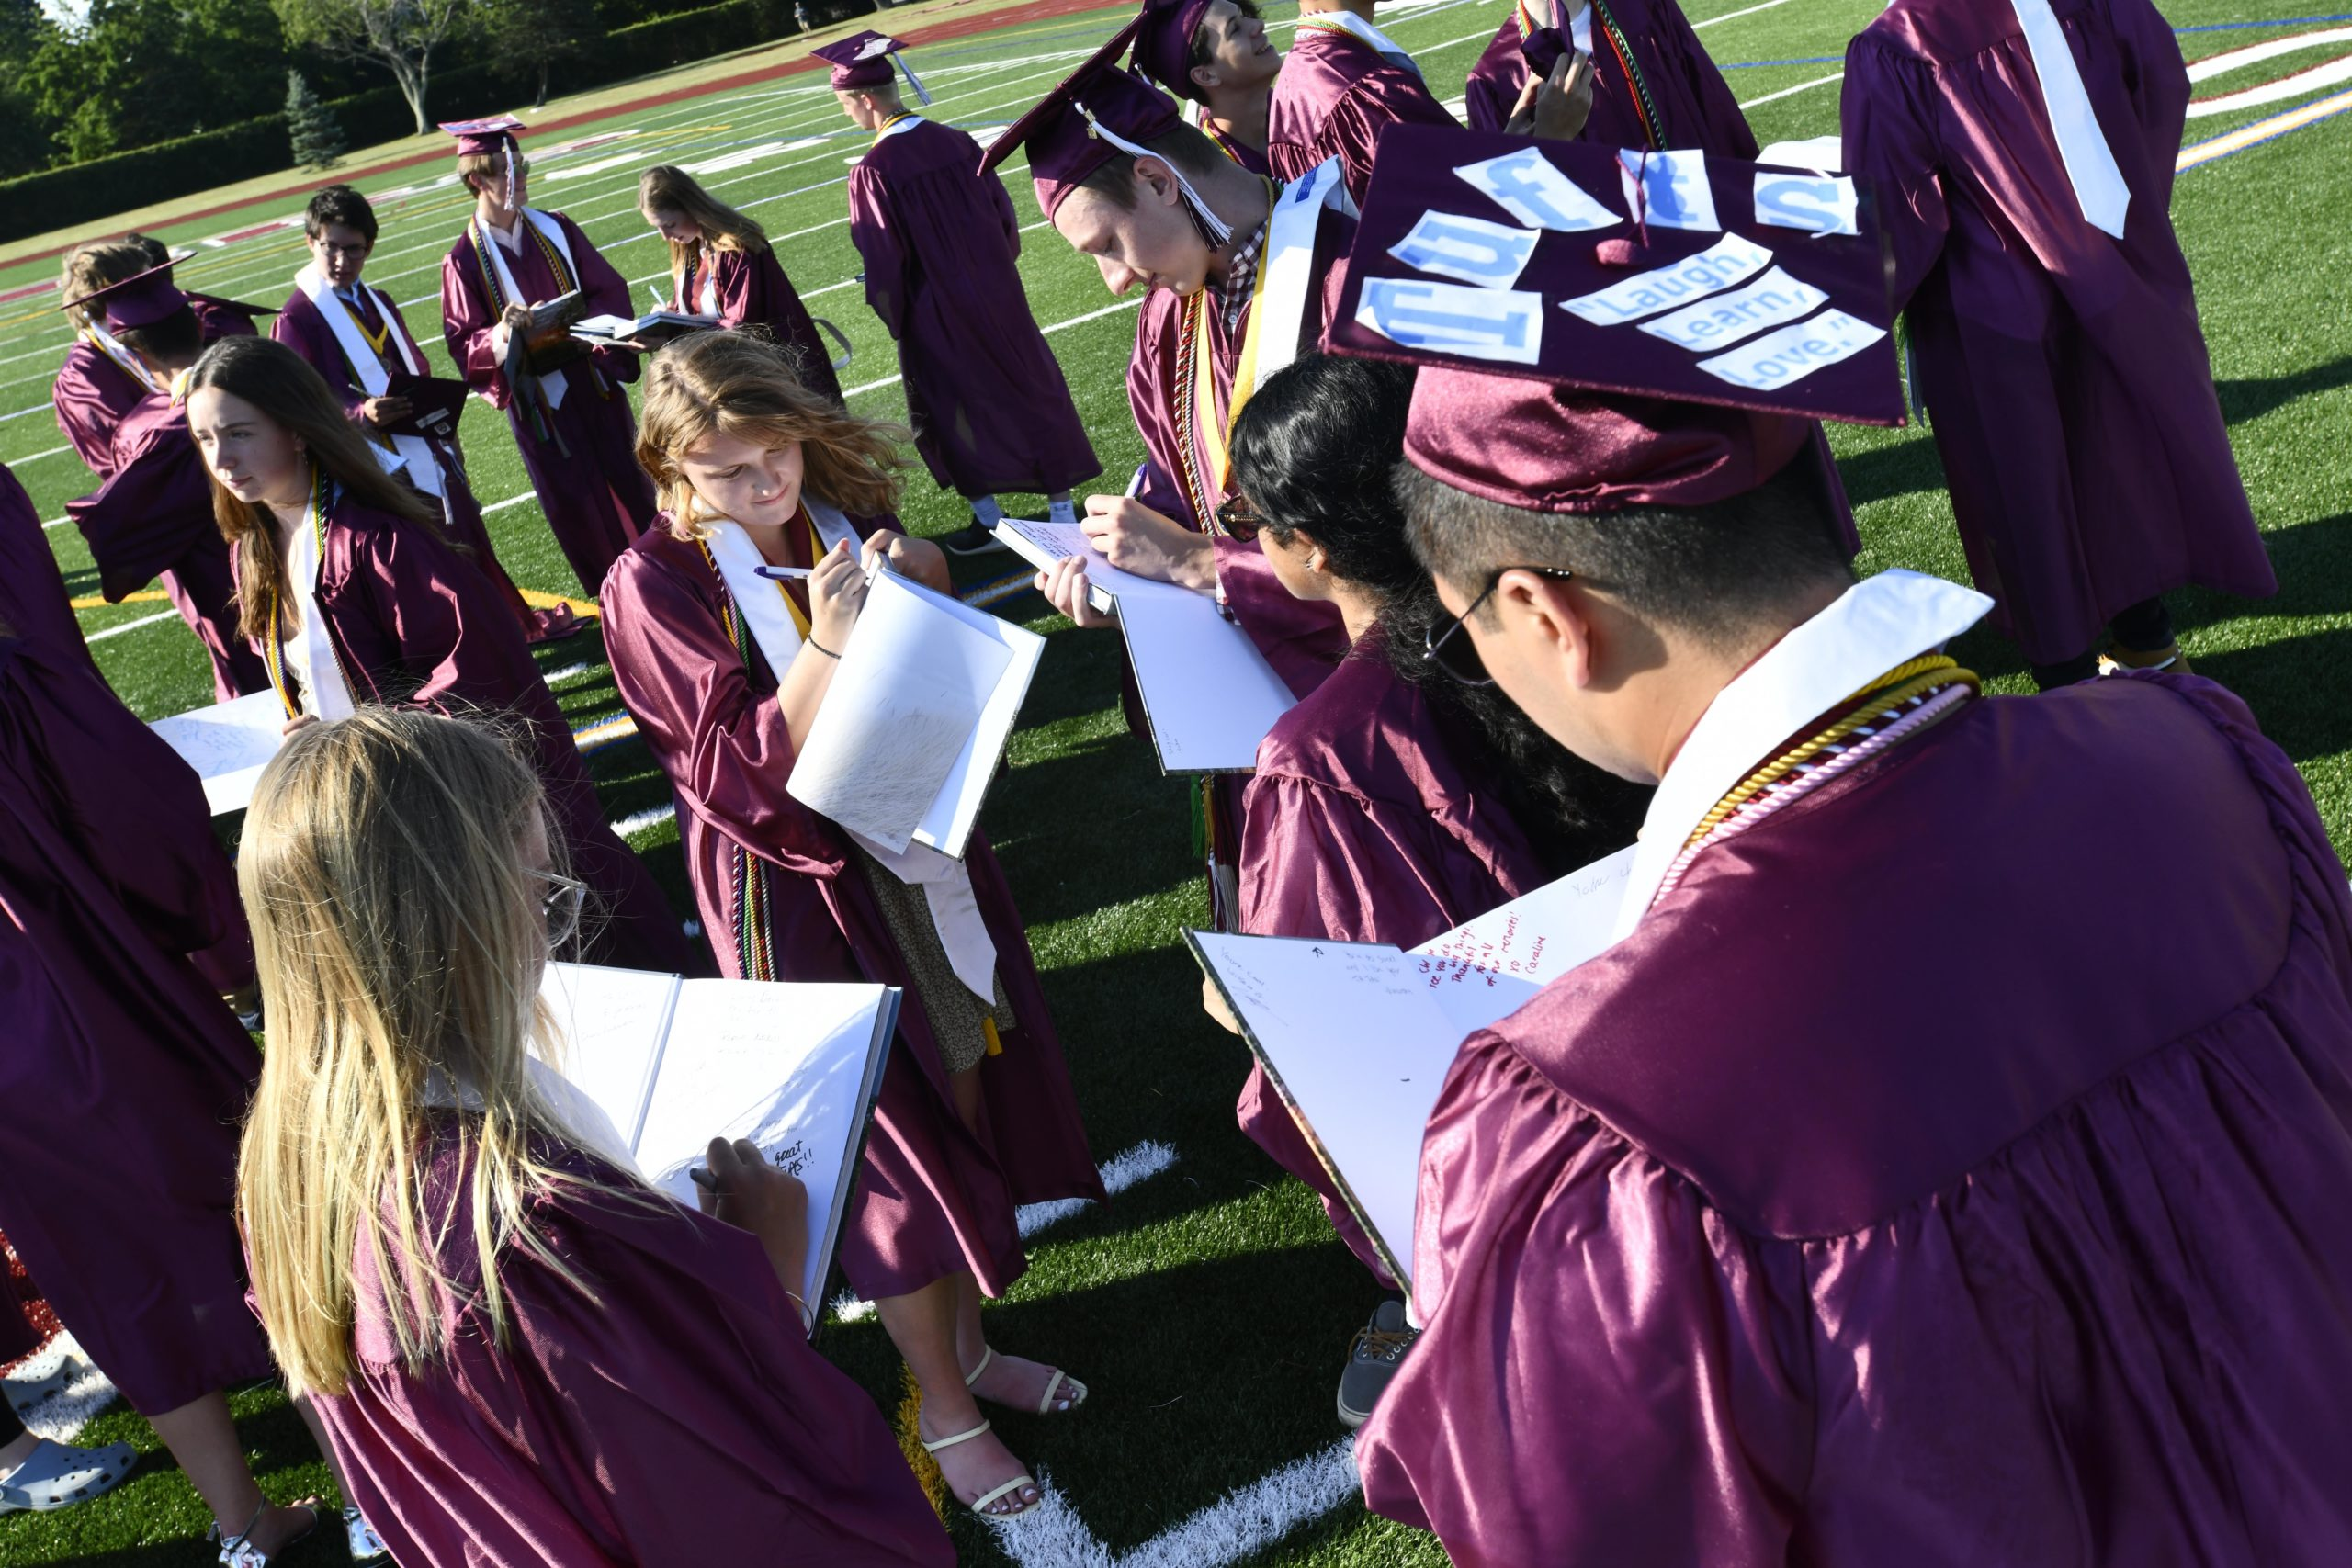 Southampton High School's unique 127th commencement was held on Friday.